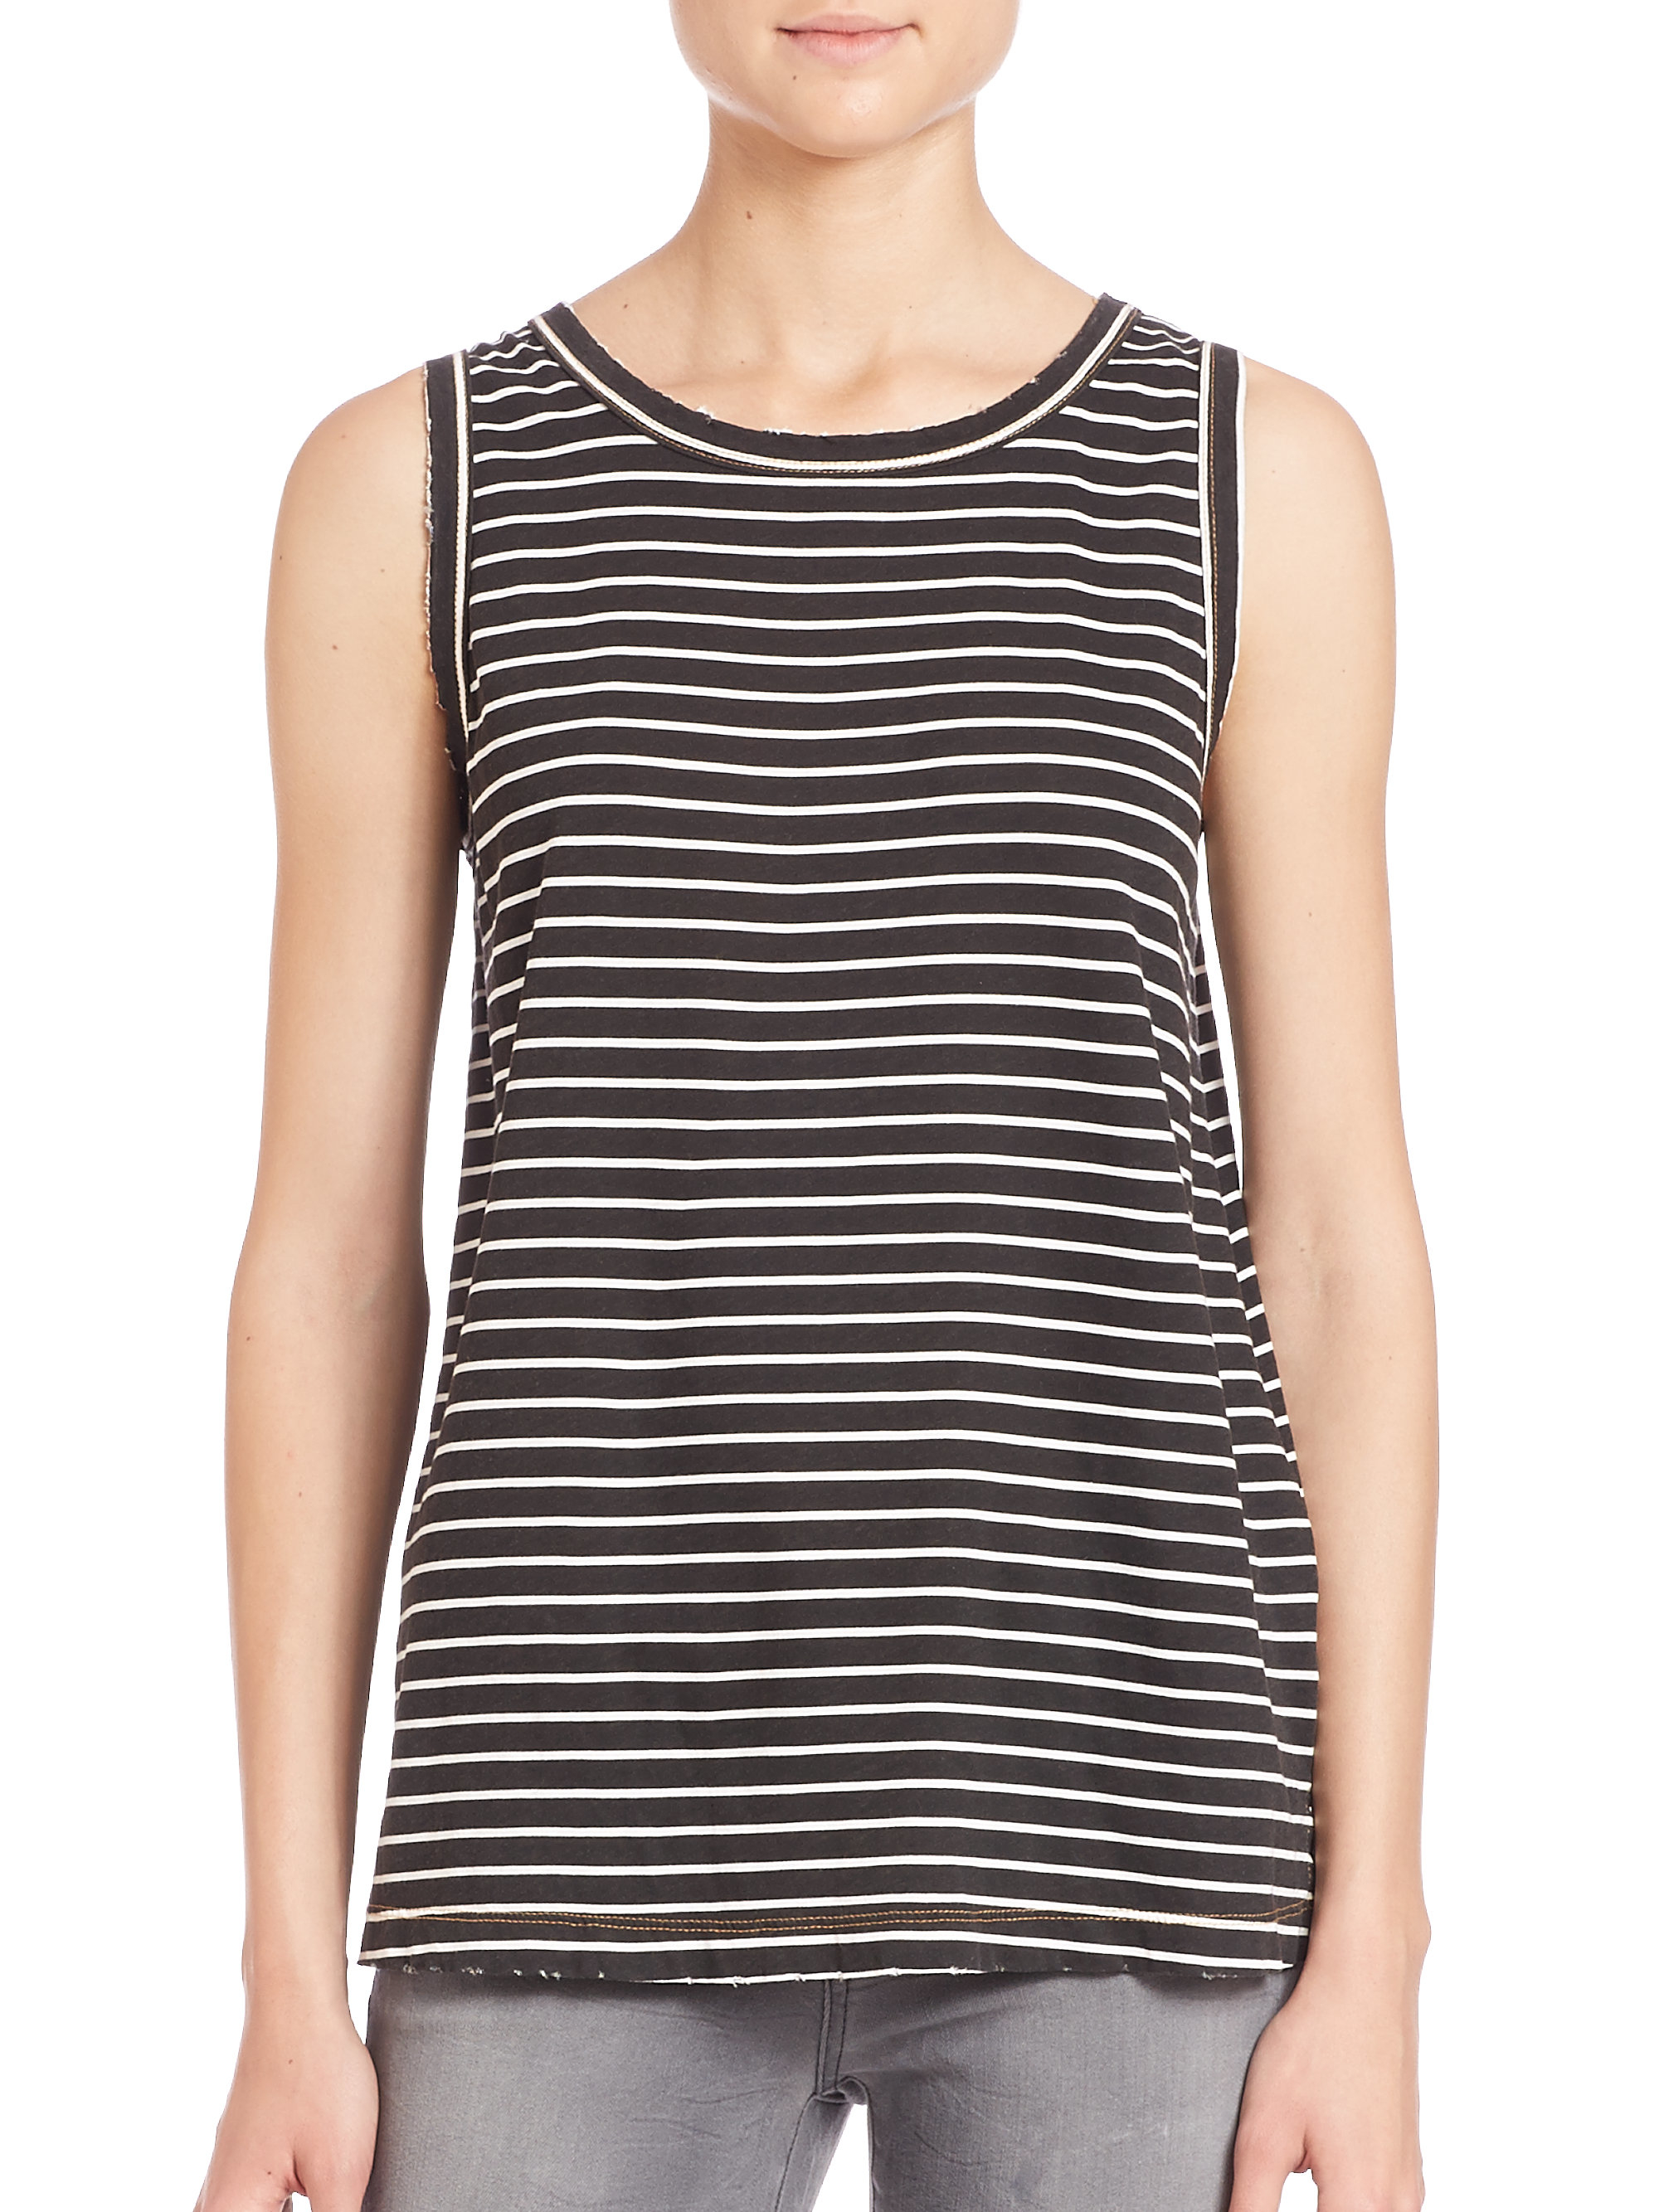 a7d45a2e5fef7 Lyst - Current Elliott Striped Muscle Tee in Black